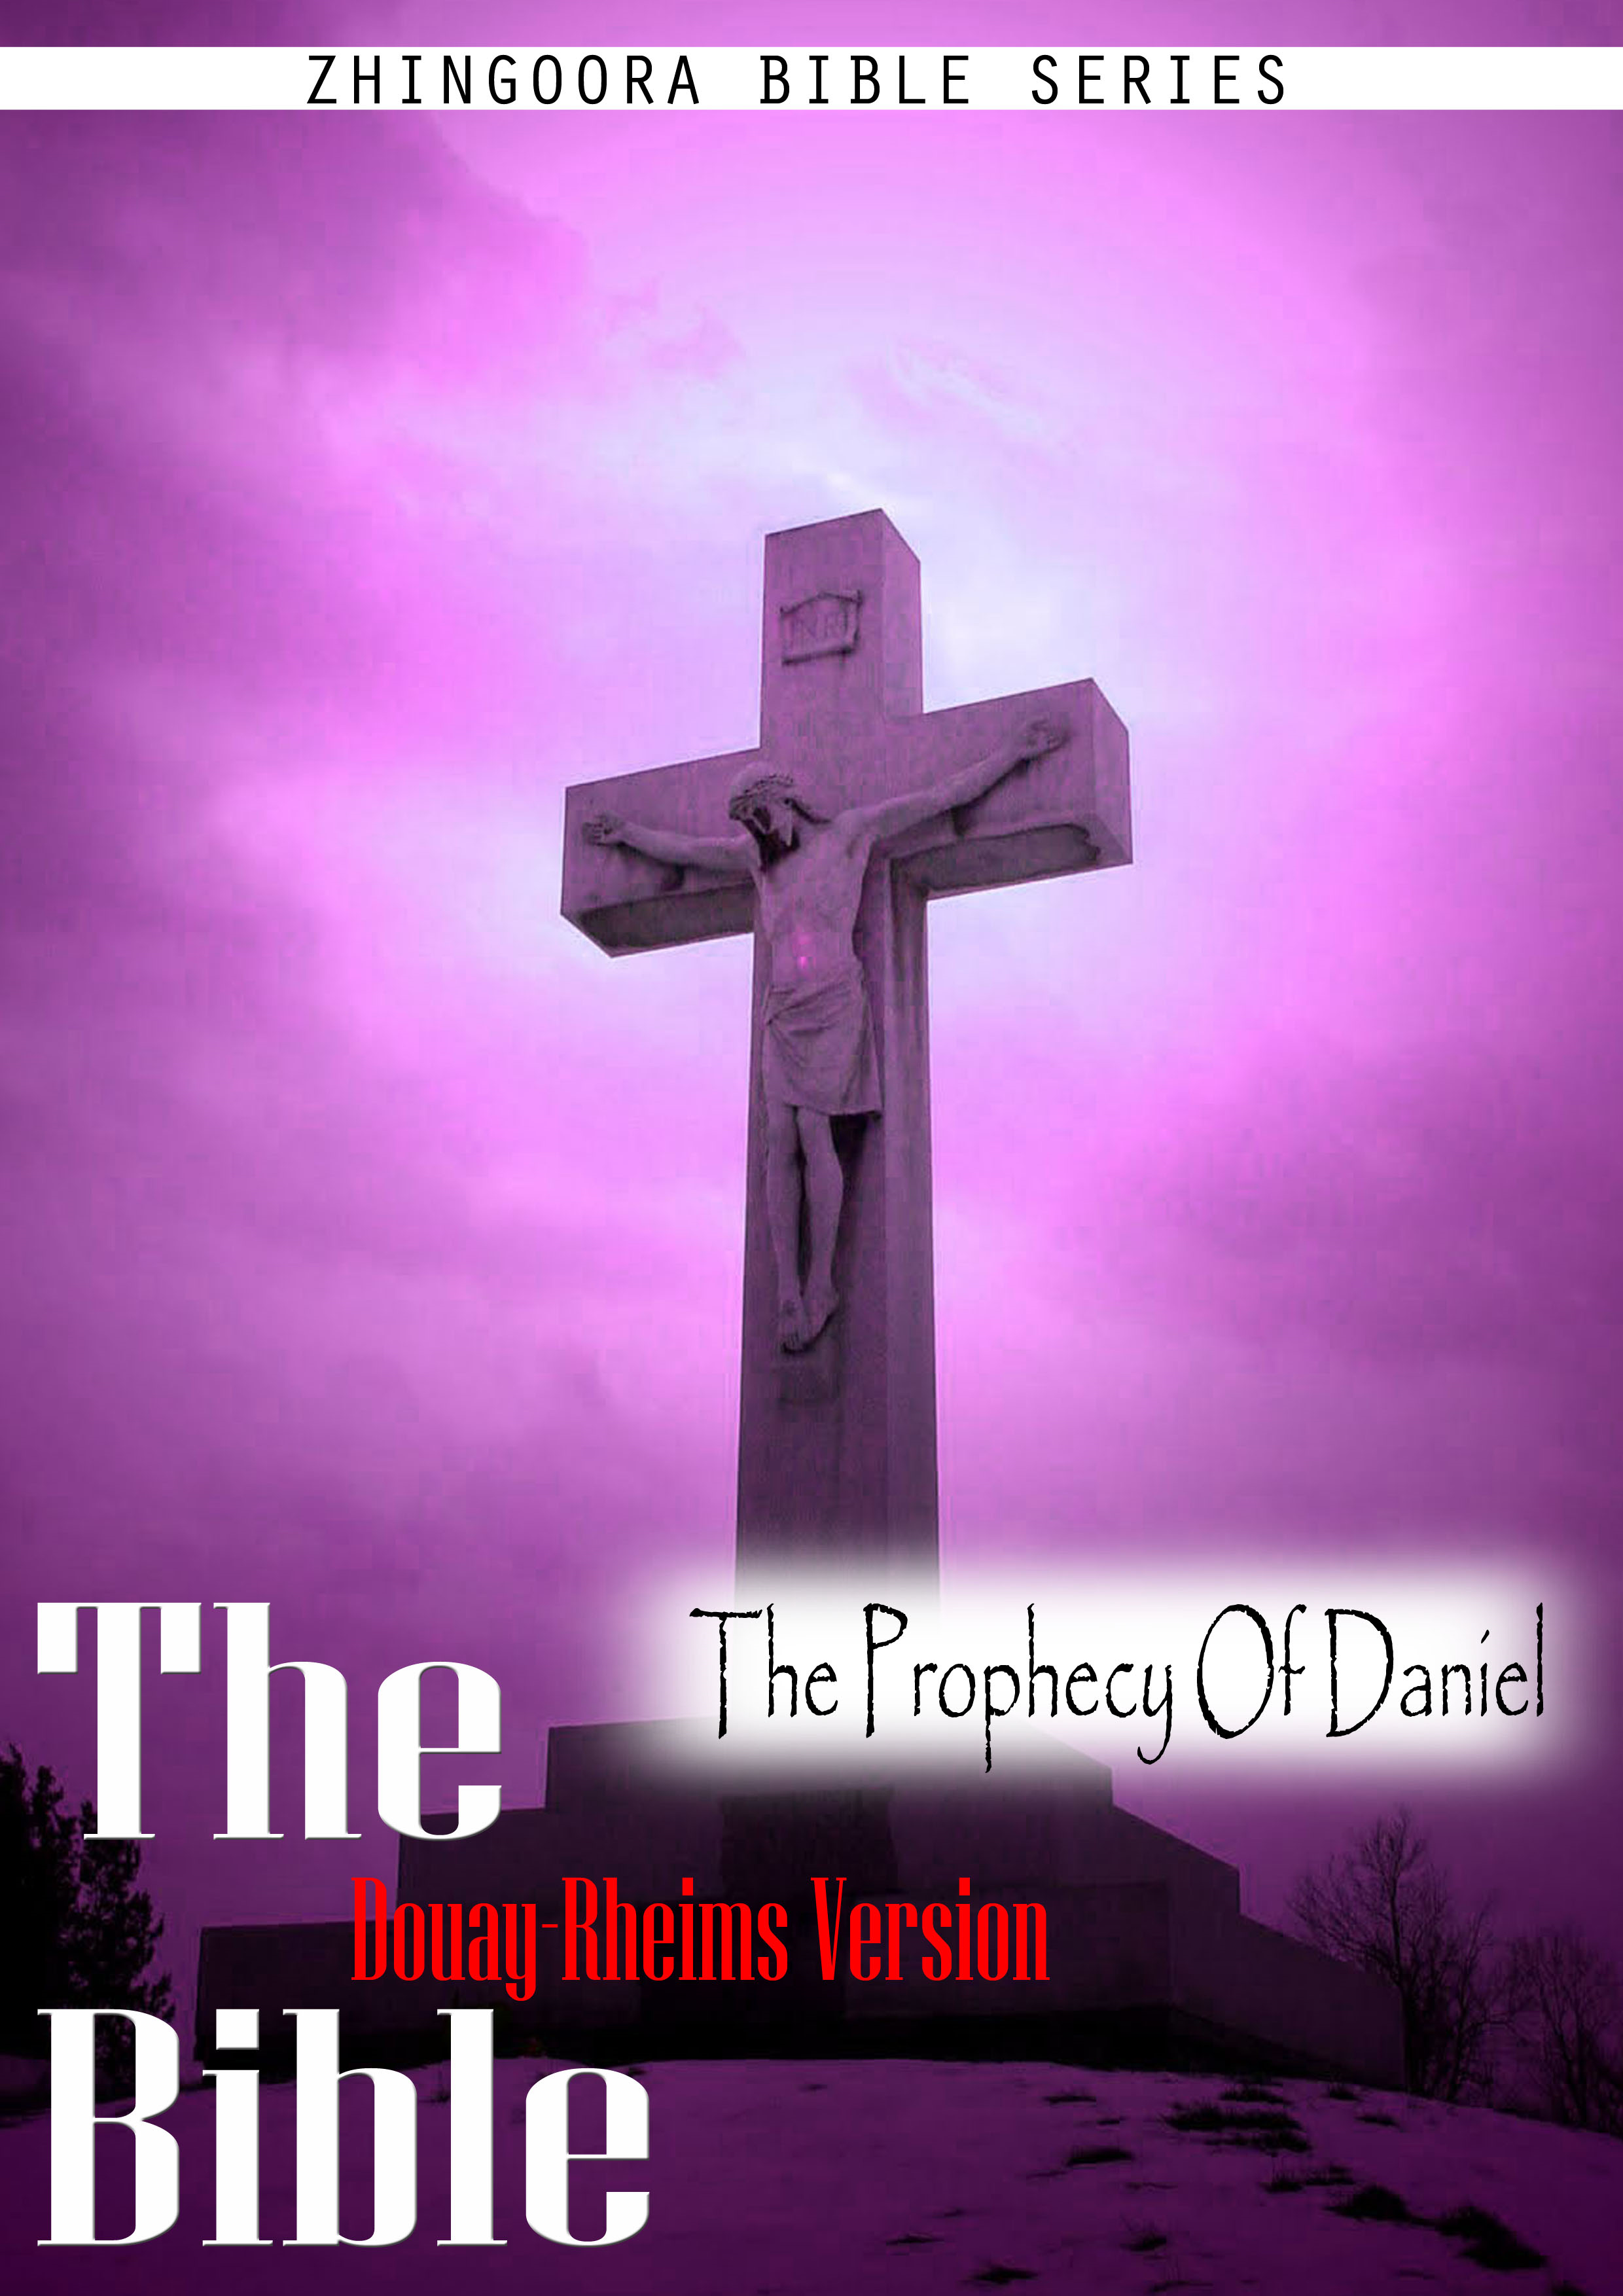 The Holy Bible Douay-Rheims Version,  The Prophecy Of Daniel